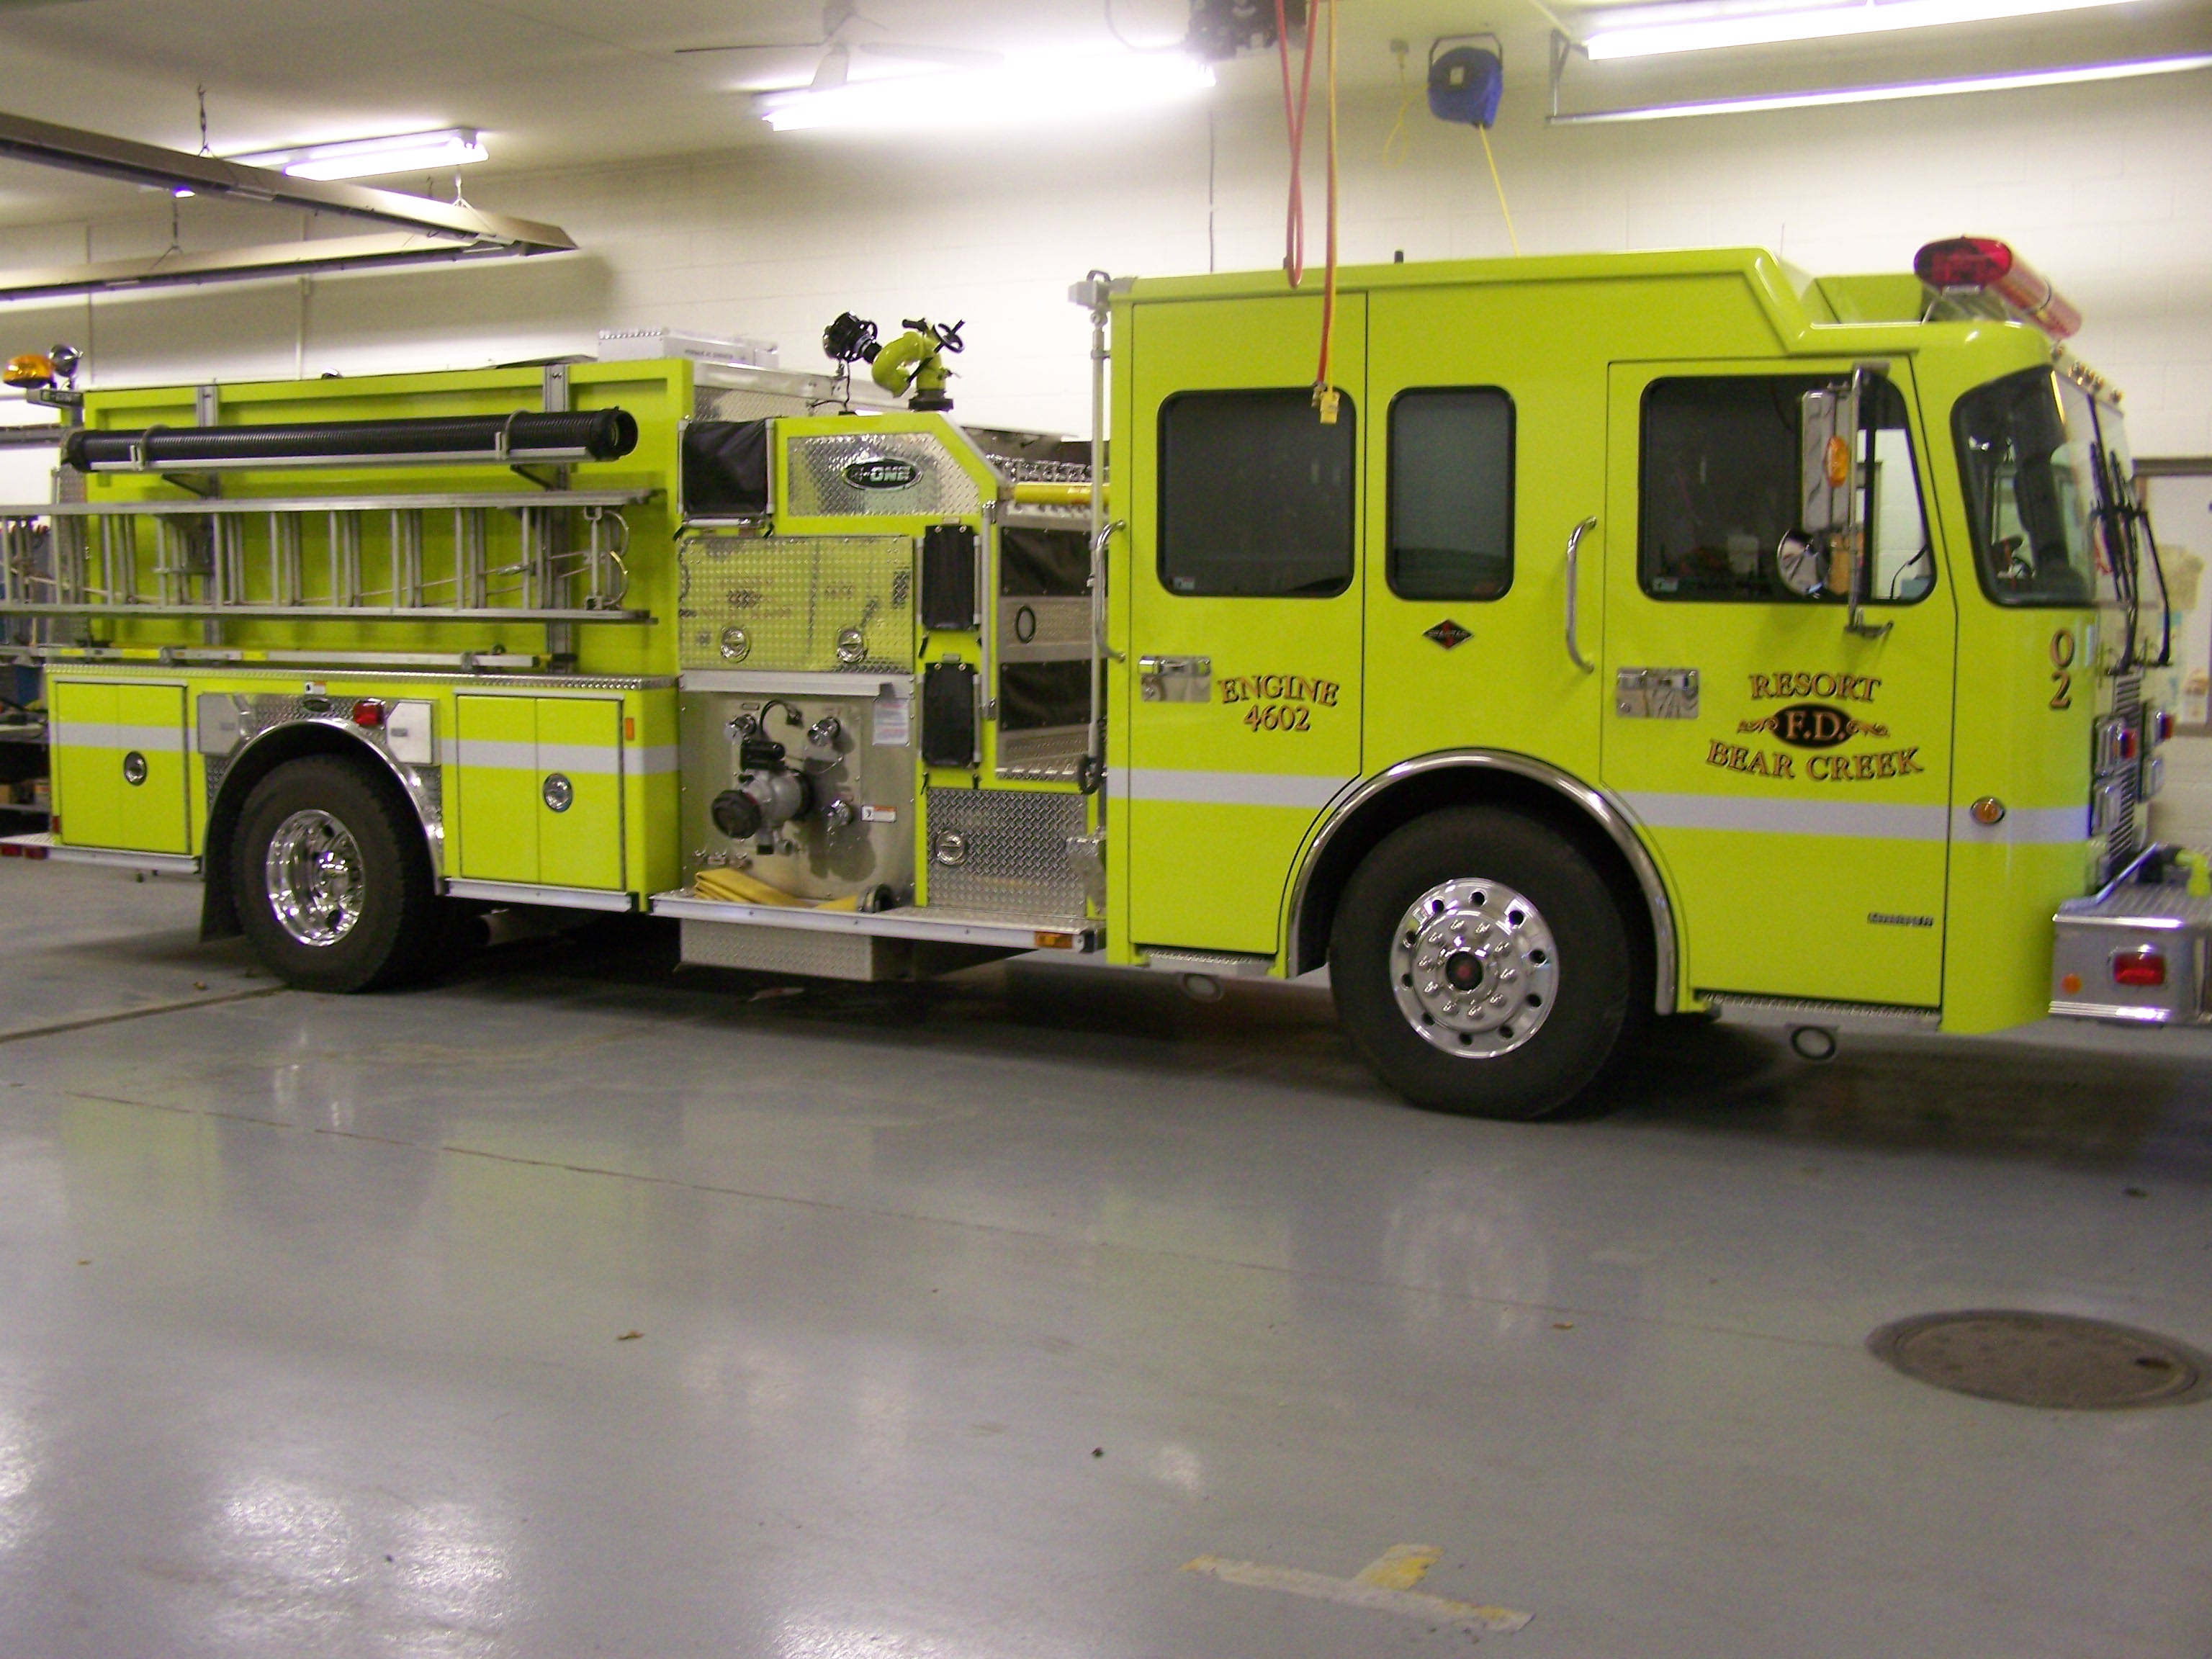 Fire Truck Computer Wallpapers Desktop Backgrounds 3072x2304 ID 3072x2304